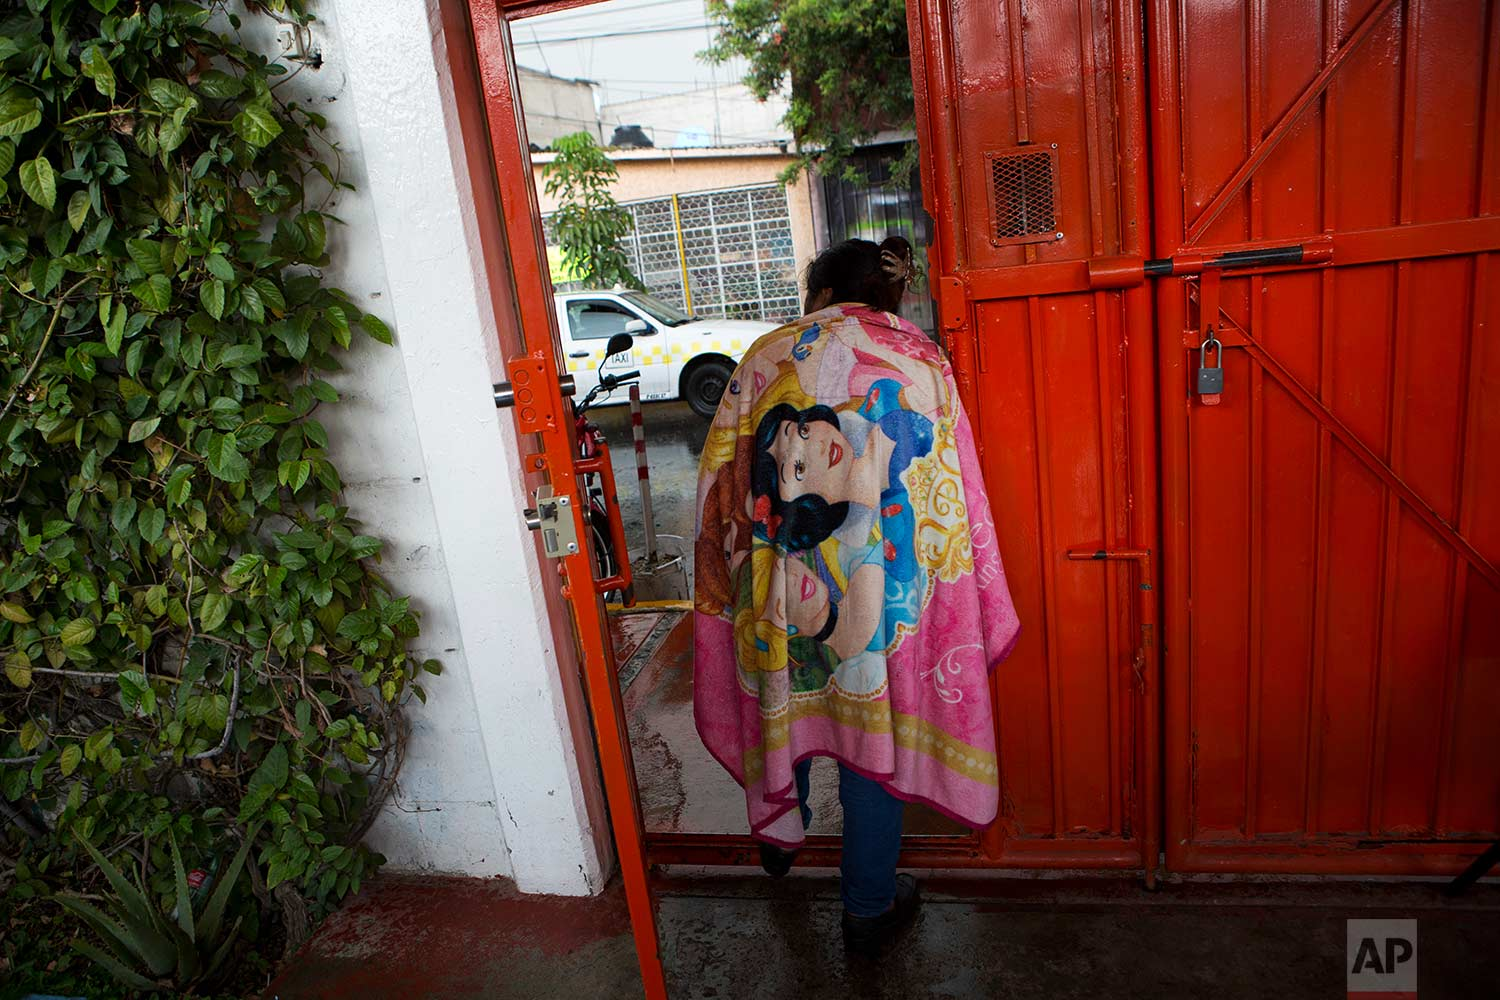 In this Aug. 25, 2017 photo, a cleaning lady looks out the door of a nursing school, monitored by a security guard, in Nezahualcoyotl, Mexico state. (AP Photo/Rebecca Blackwell)